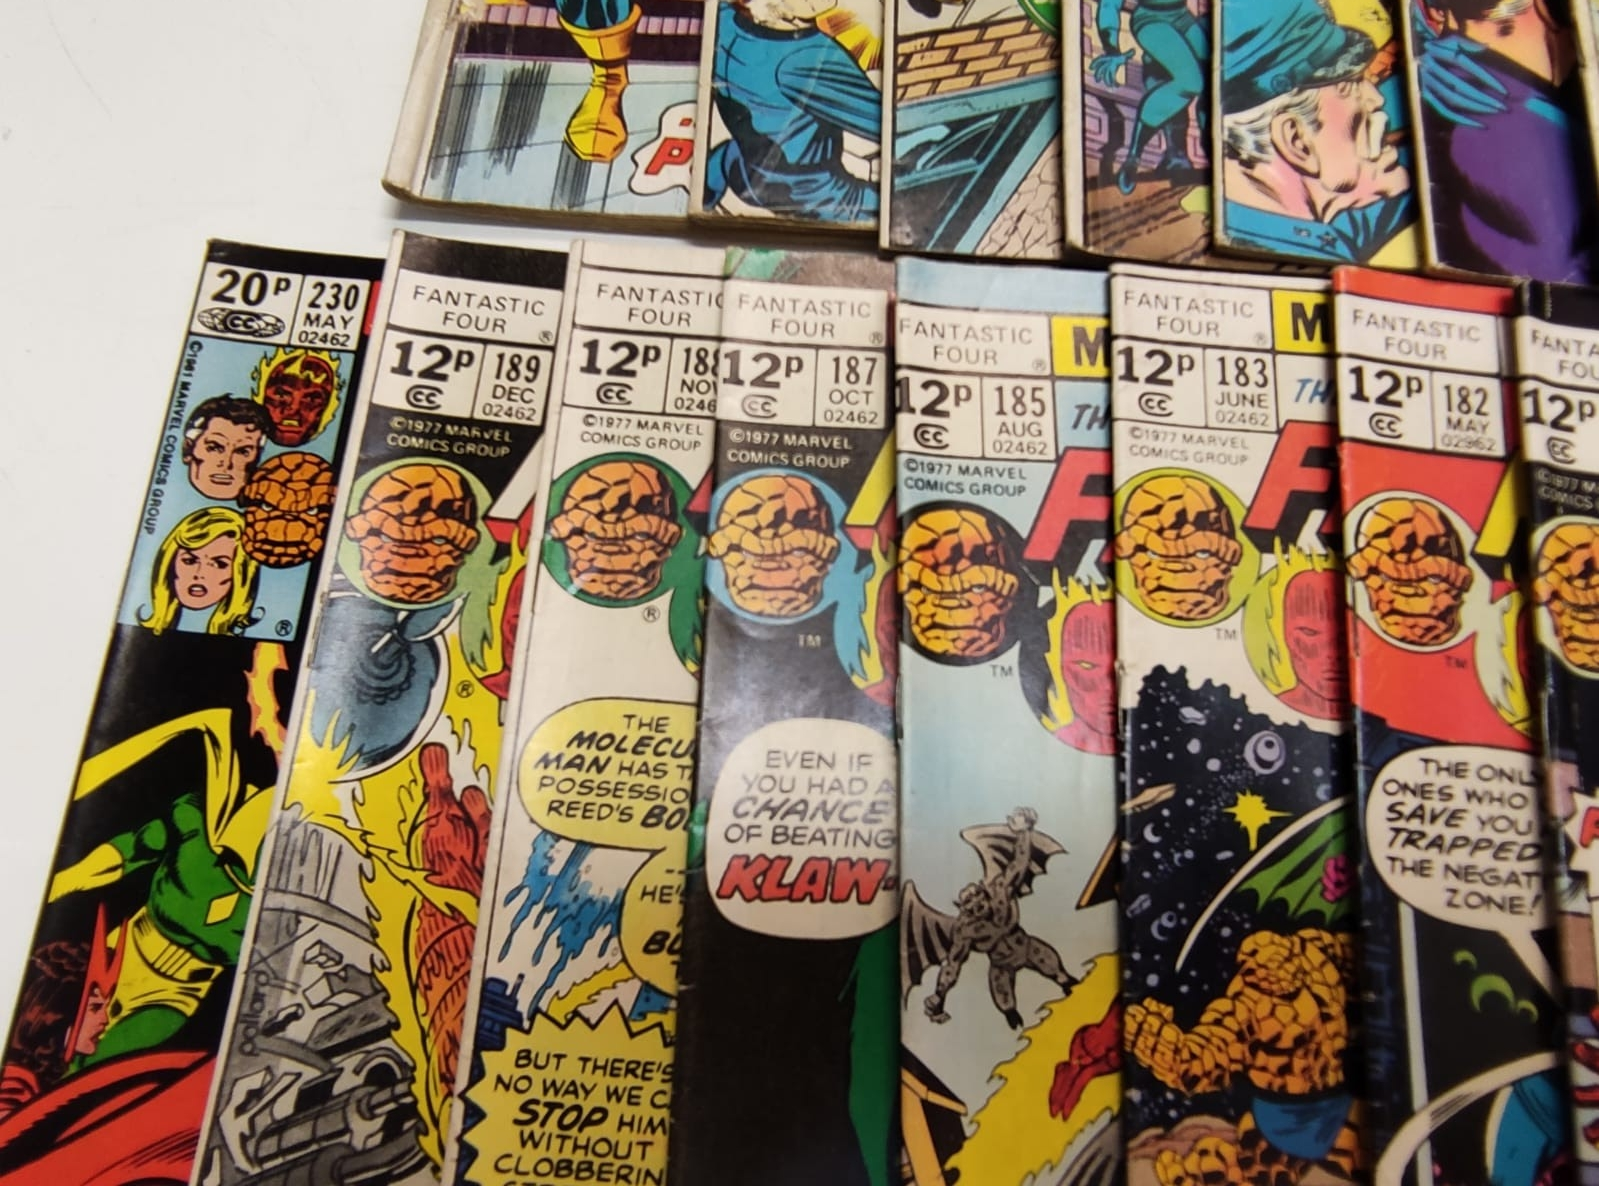 30x Marvel Fantastic four mid 1970s editions. Used, in good condition. - Image 6 of 17